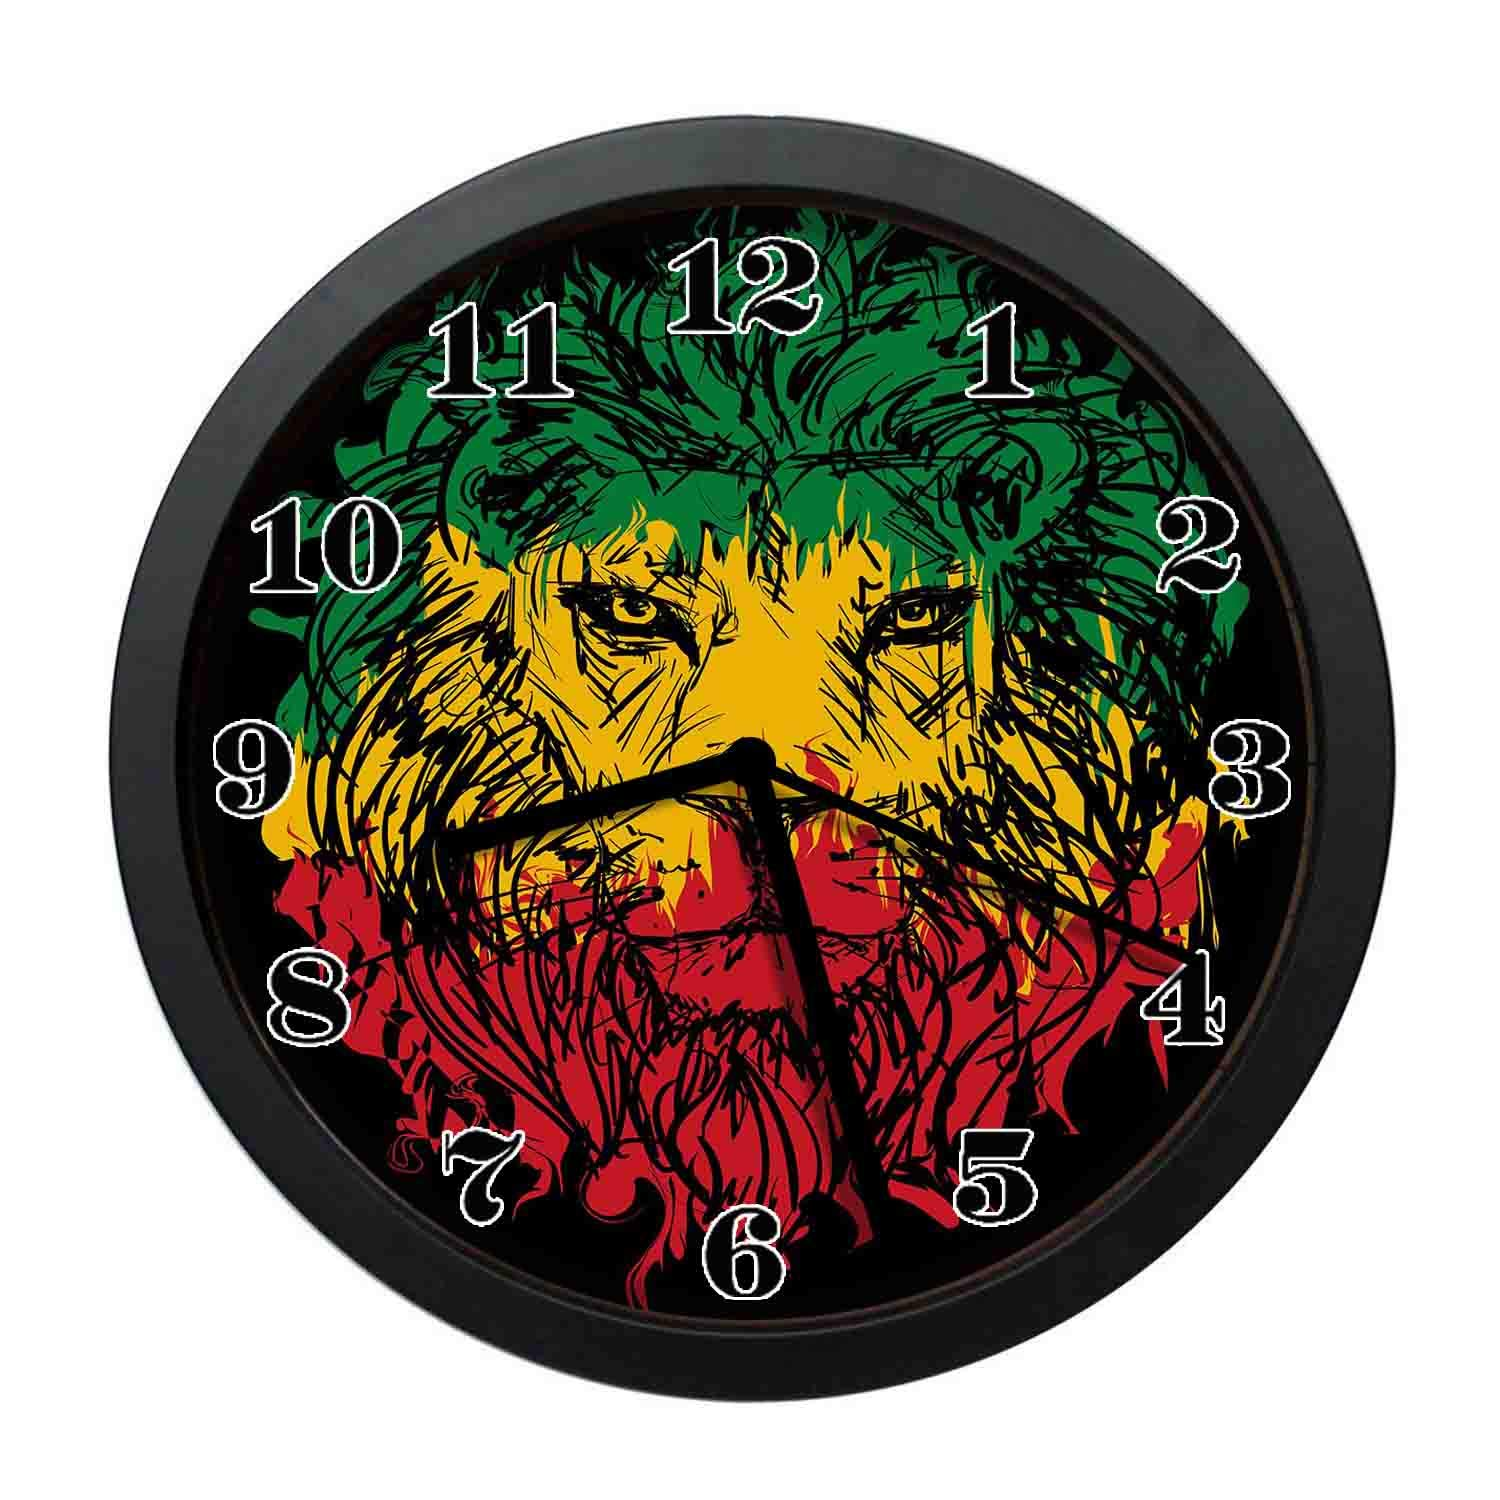 wojuedehuidamai6 Art Wall Clock- Ethiopian Flag Colors on Grunge Sketch Lion Head with Black Backdrop Theme Art Decor Wall Clock for Home and Office with 12in